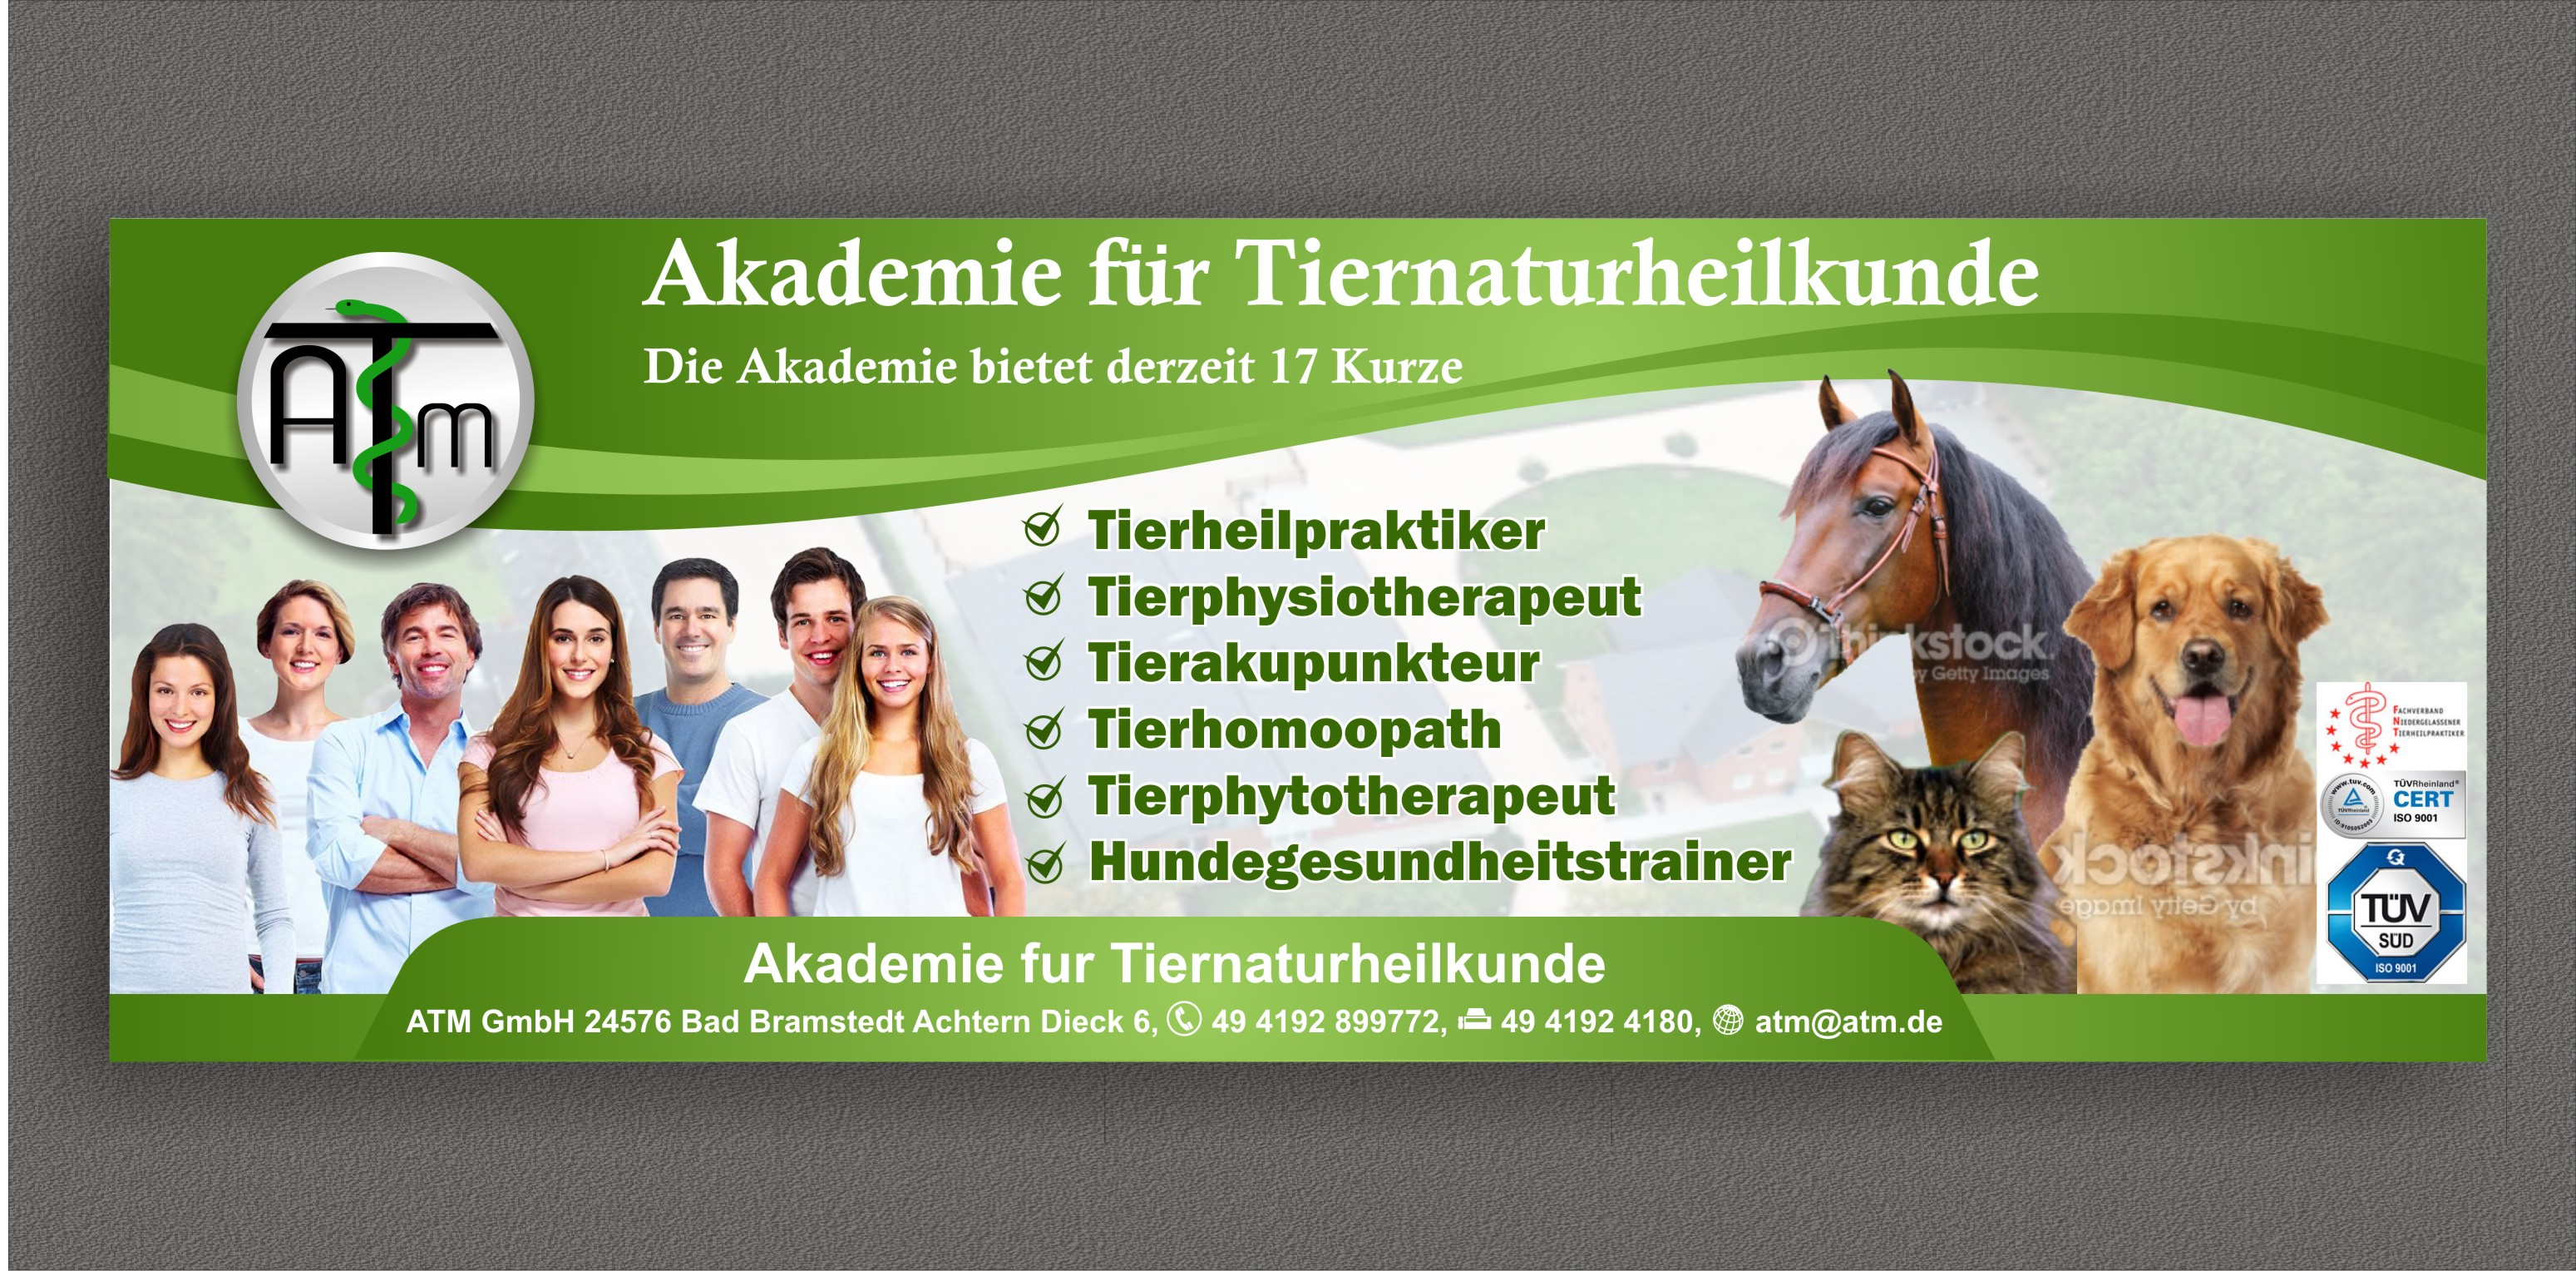 magazine ad for an academy of jobs with animals (horse,cat,dog - Education